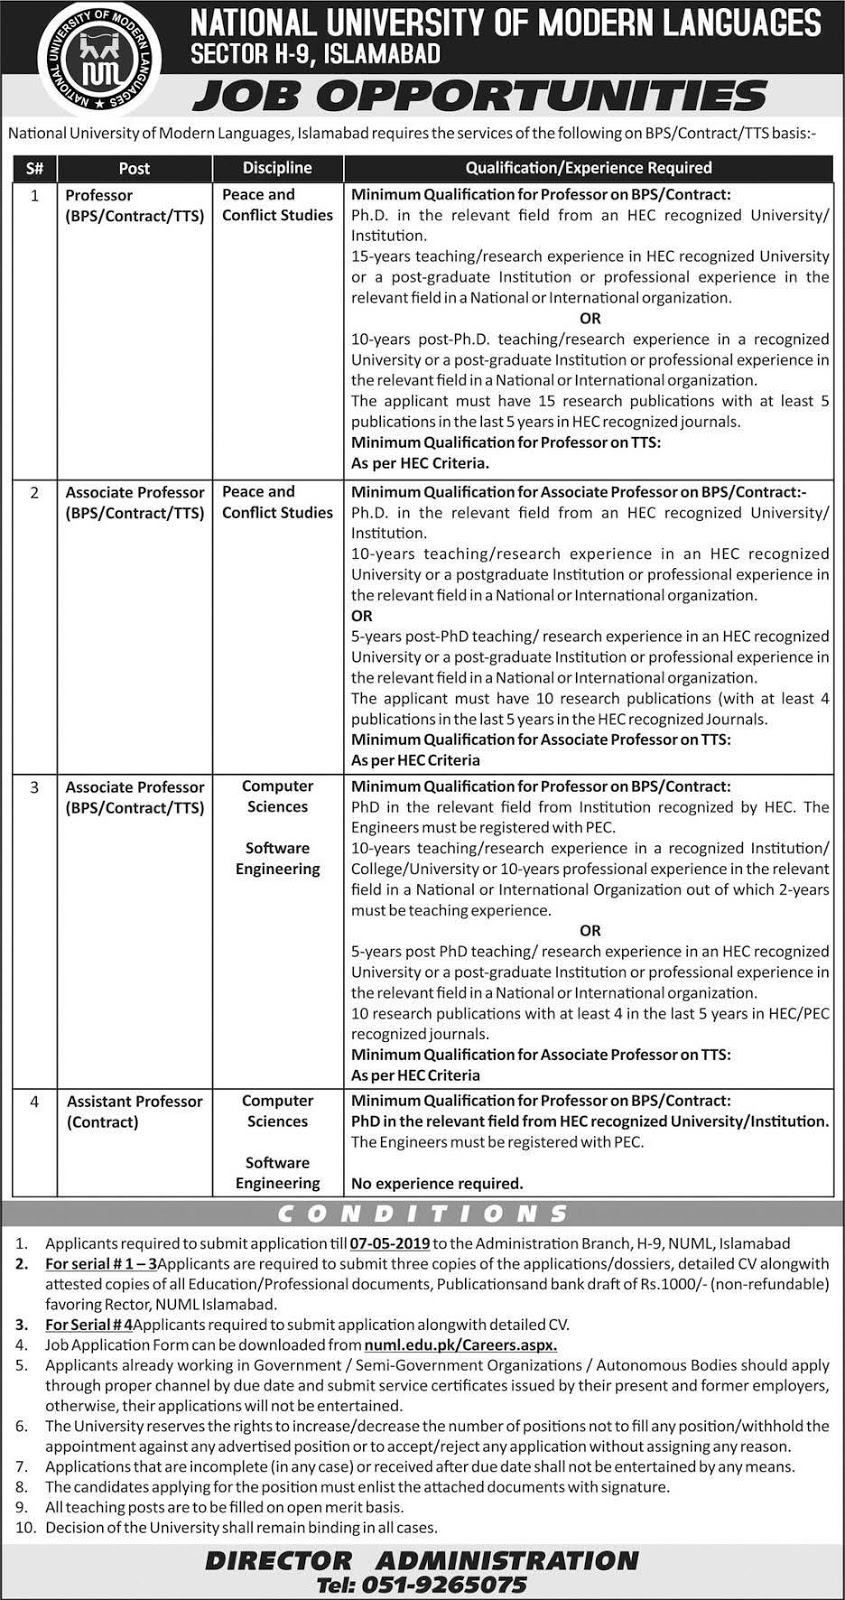 Jobs in National University of Modern Languages Islamabad 24 April 2019